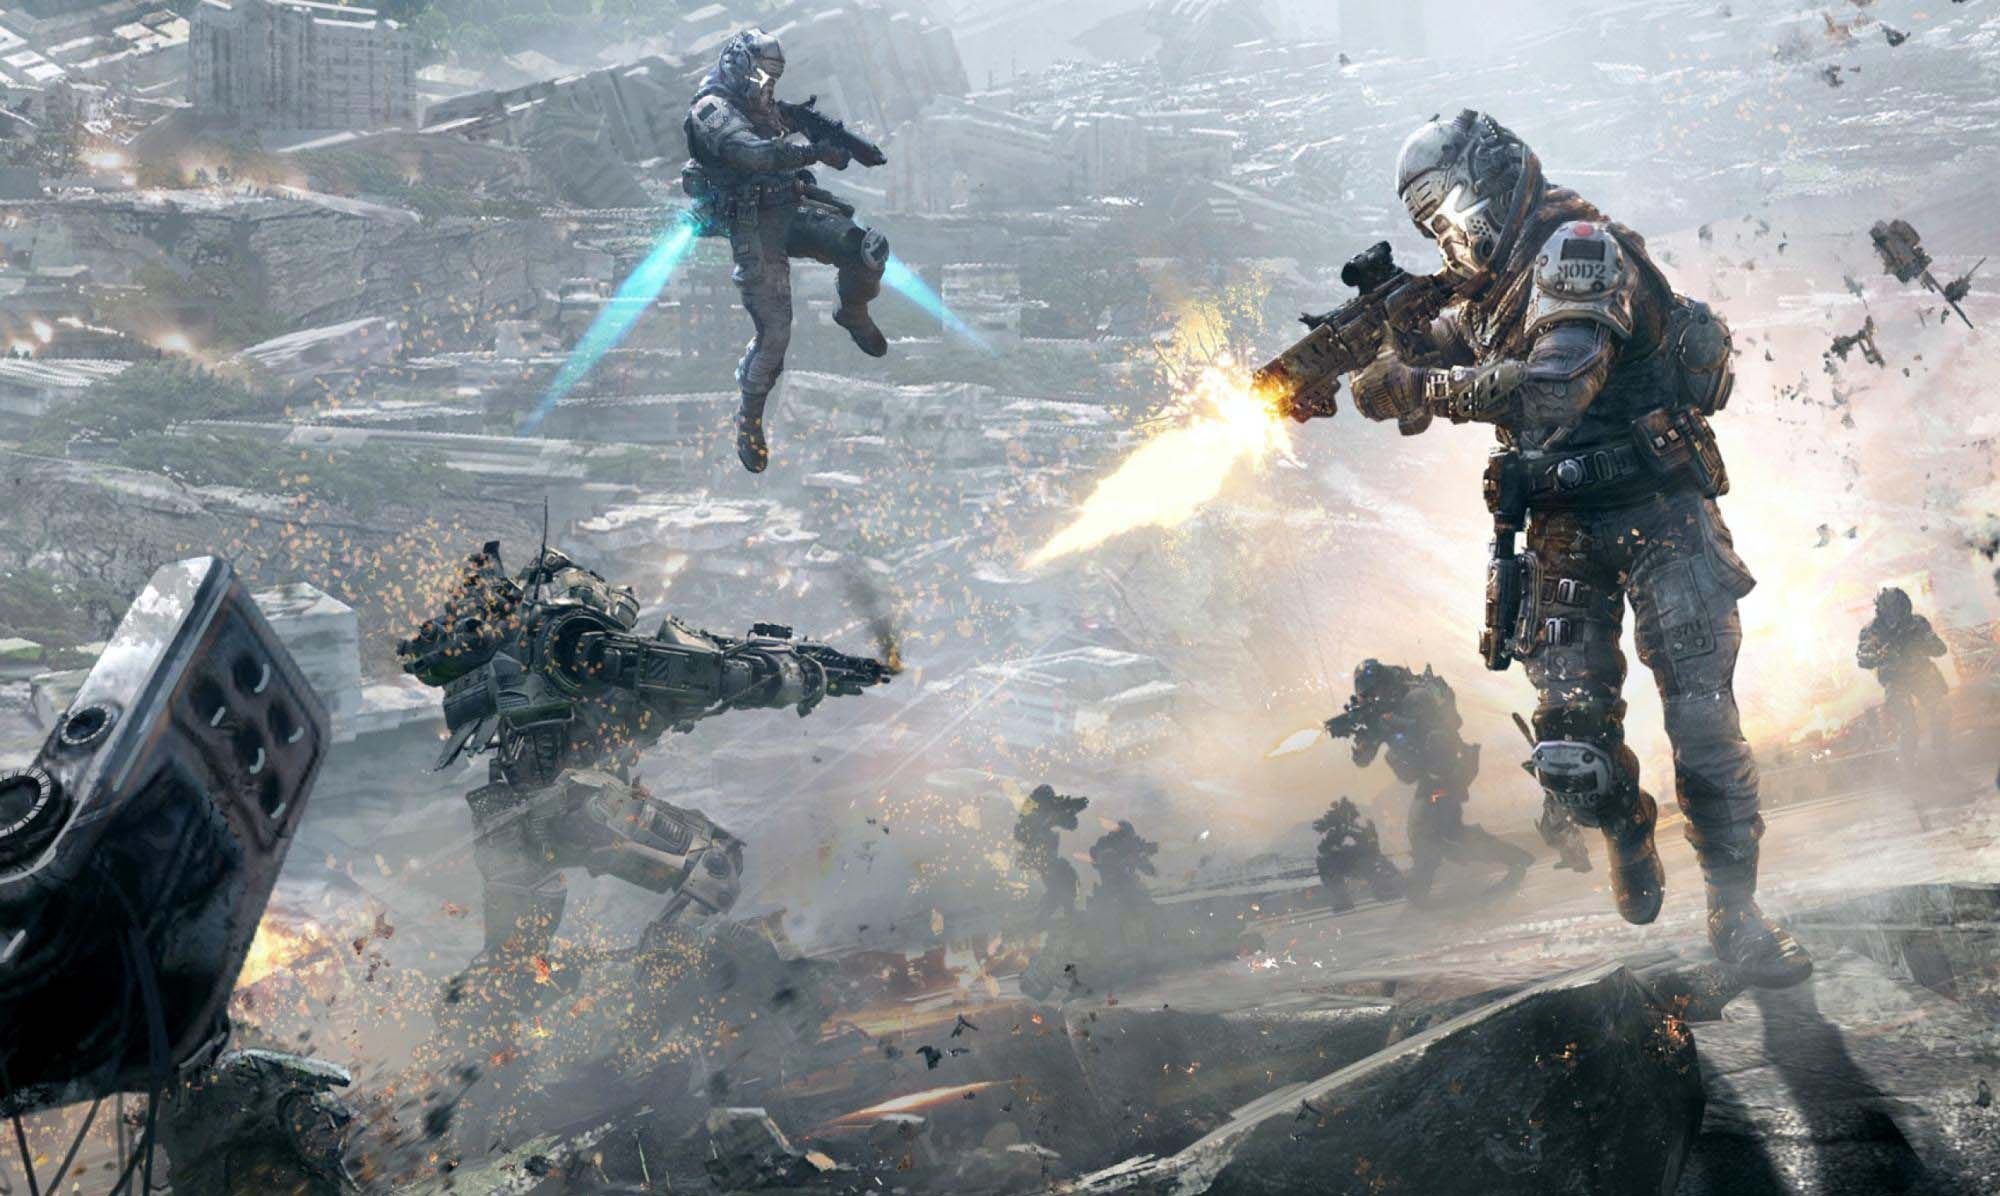 titanfall 2 wallpapers hd resolution is cool wallpapers | gg | pinterest